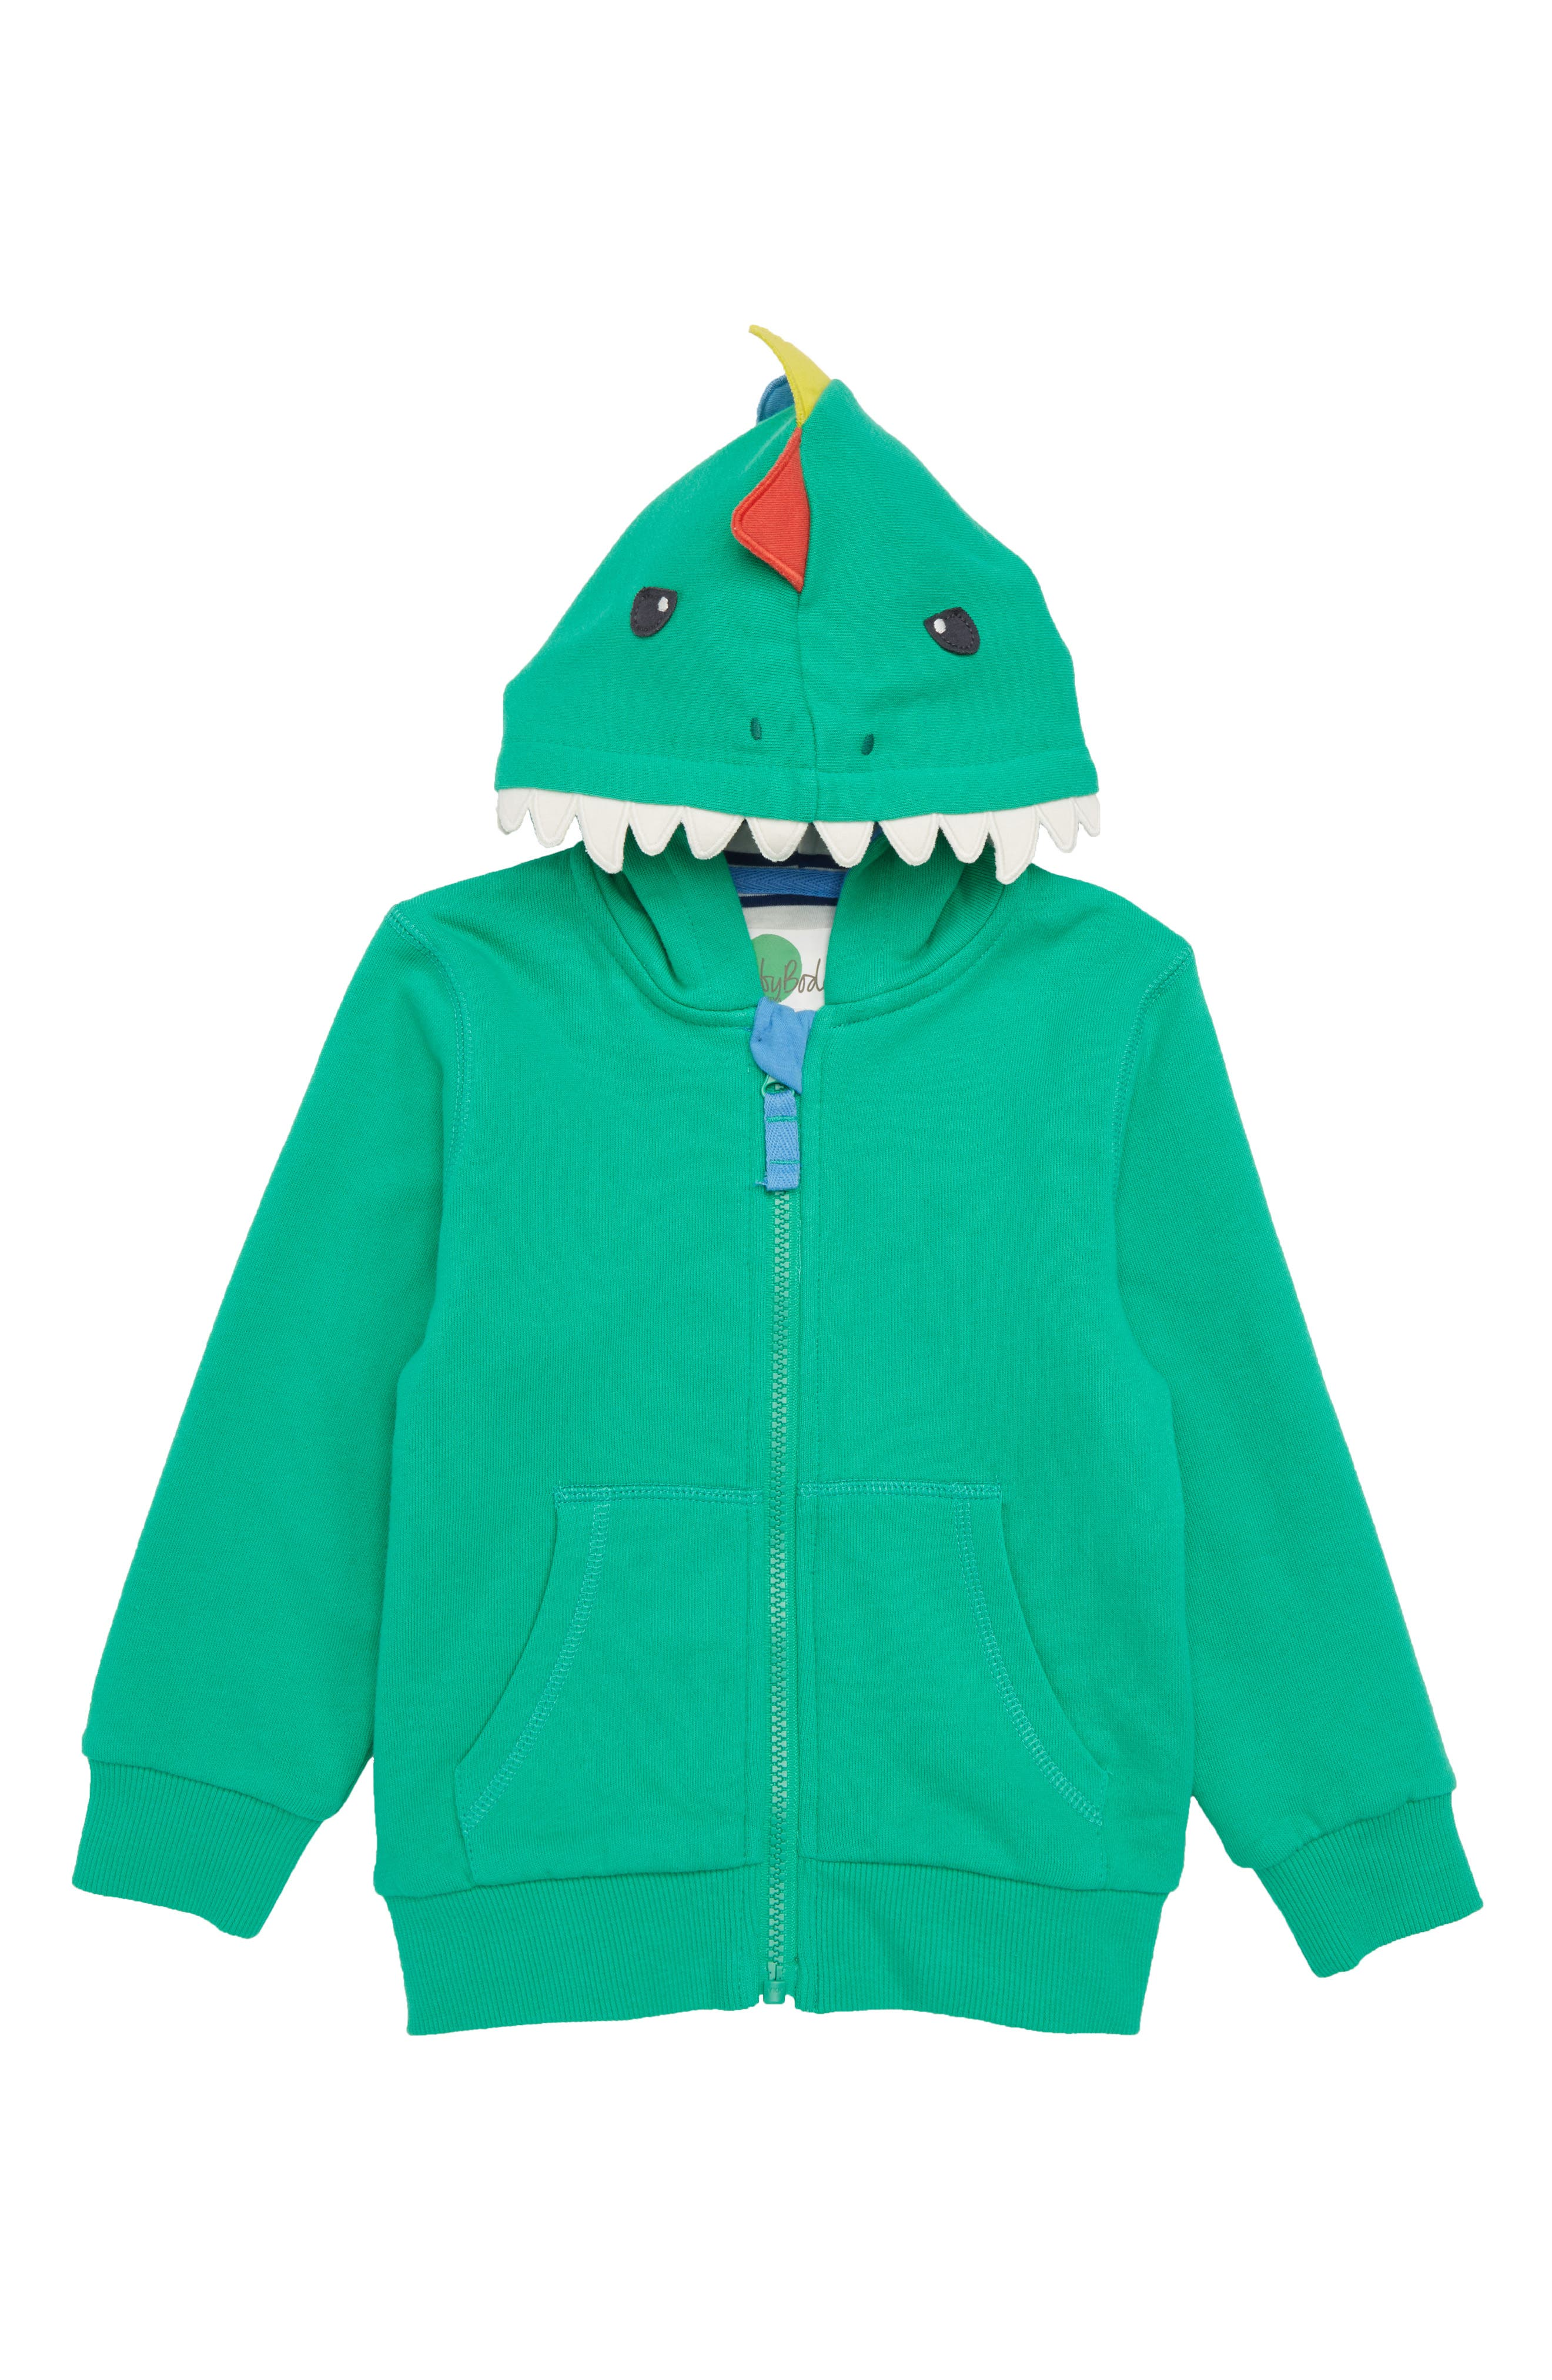 3D Dino Zip Hoodie,                             Main thumbnail 1, color,                             Astro Green